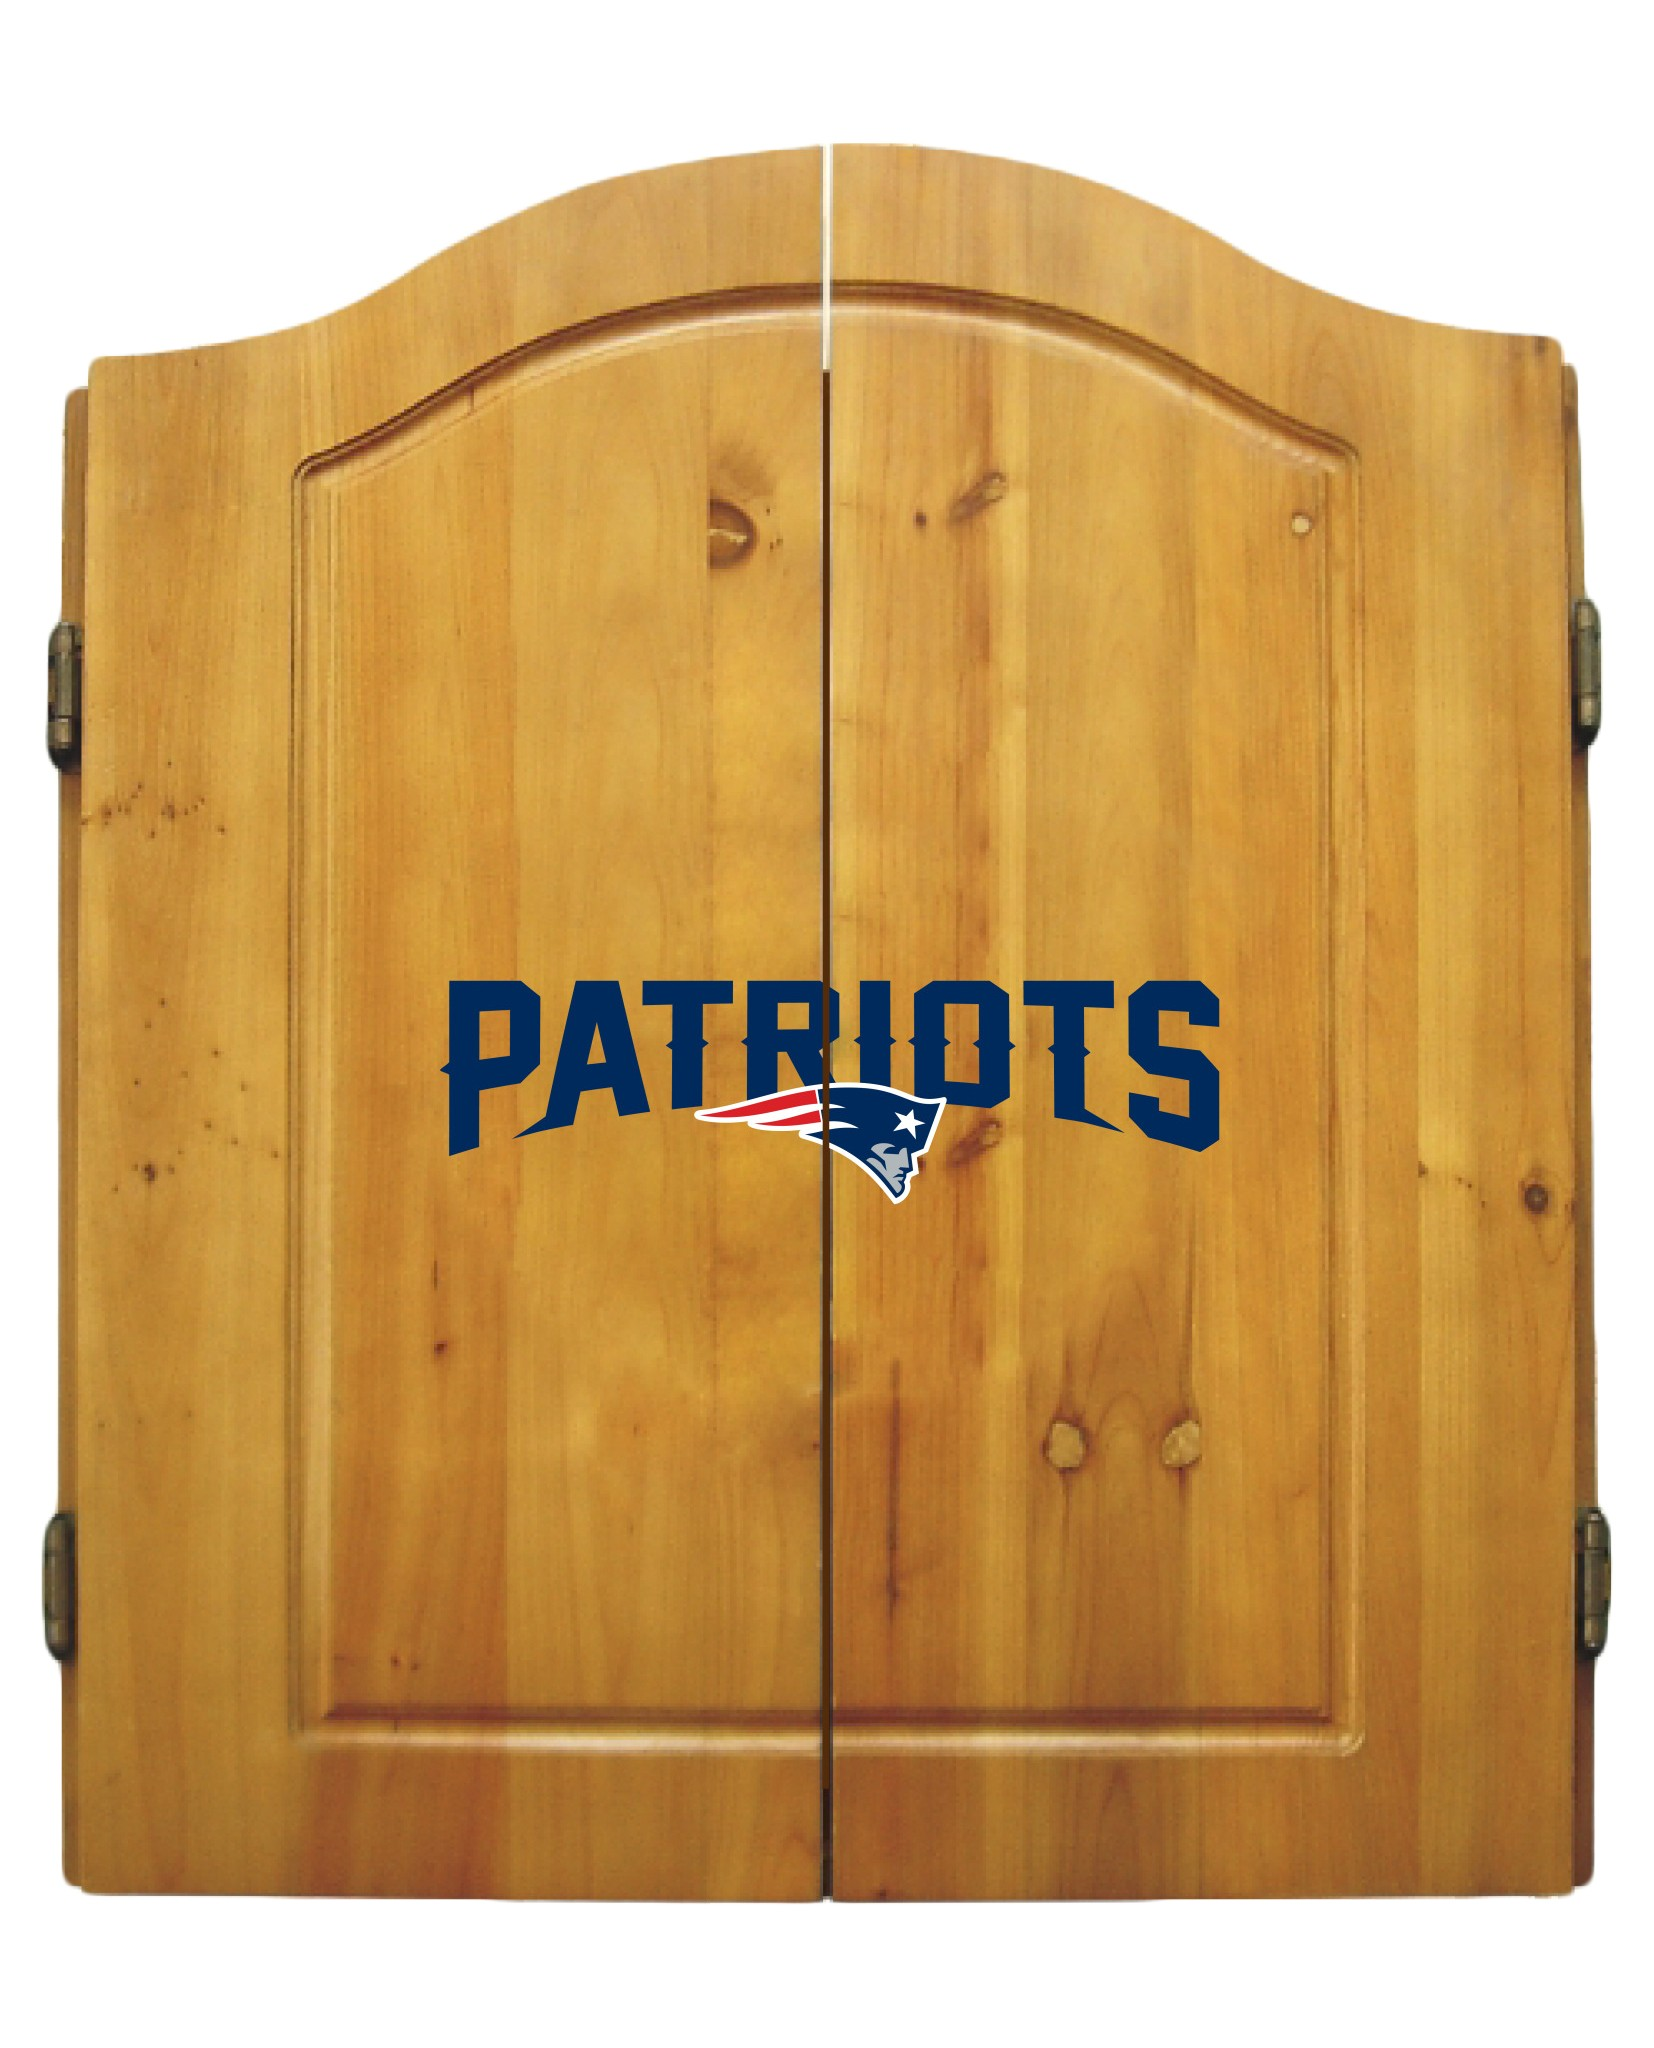 Nfl Football New England Patriots Bbq Sets - 20-1011 - New England Patriots Dart Cabinet Set 20-1011